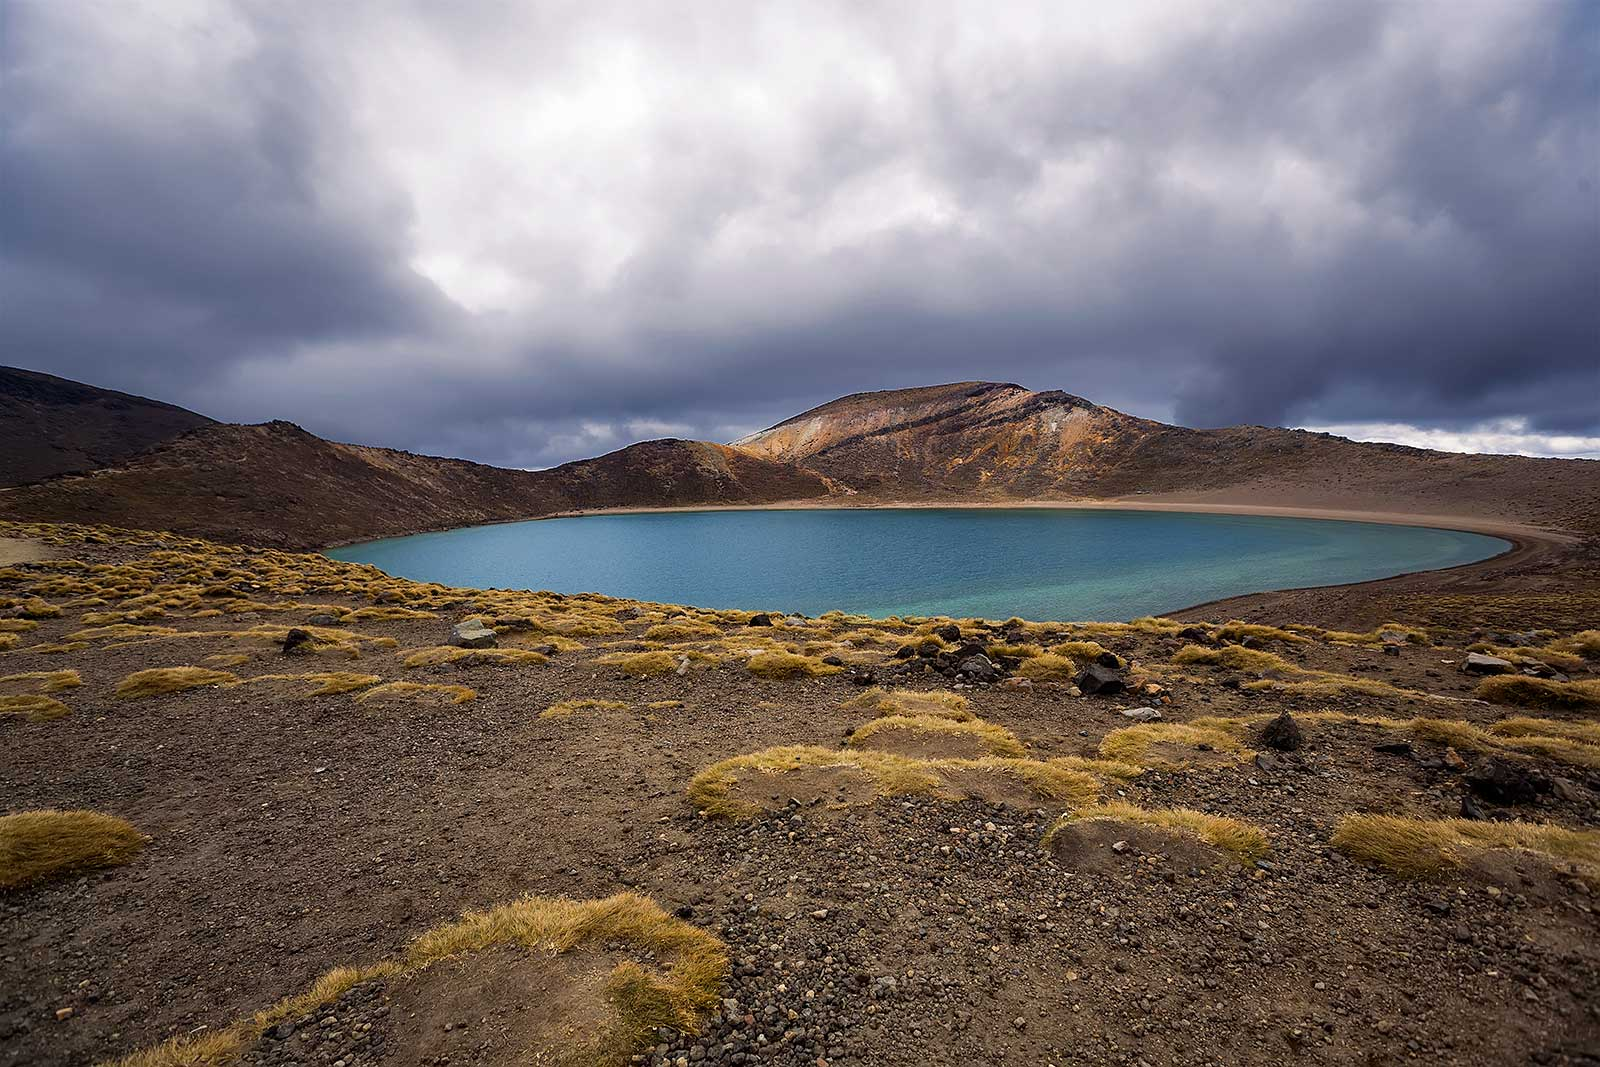 tongariro-alpine-crossing-blue-lake-new-zealand